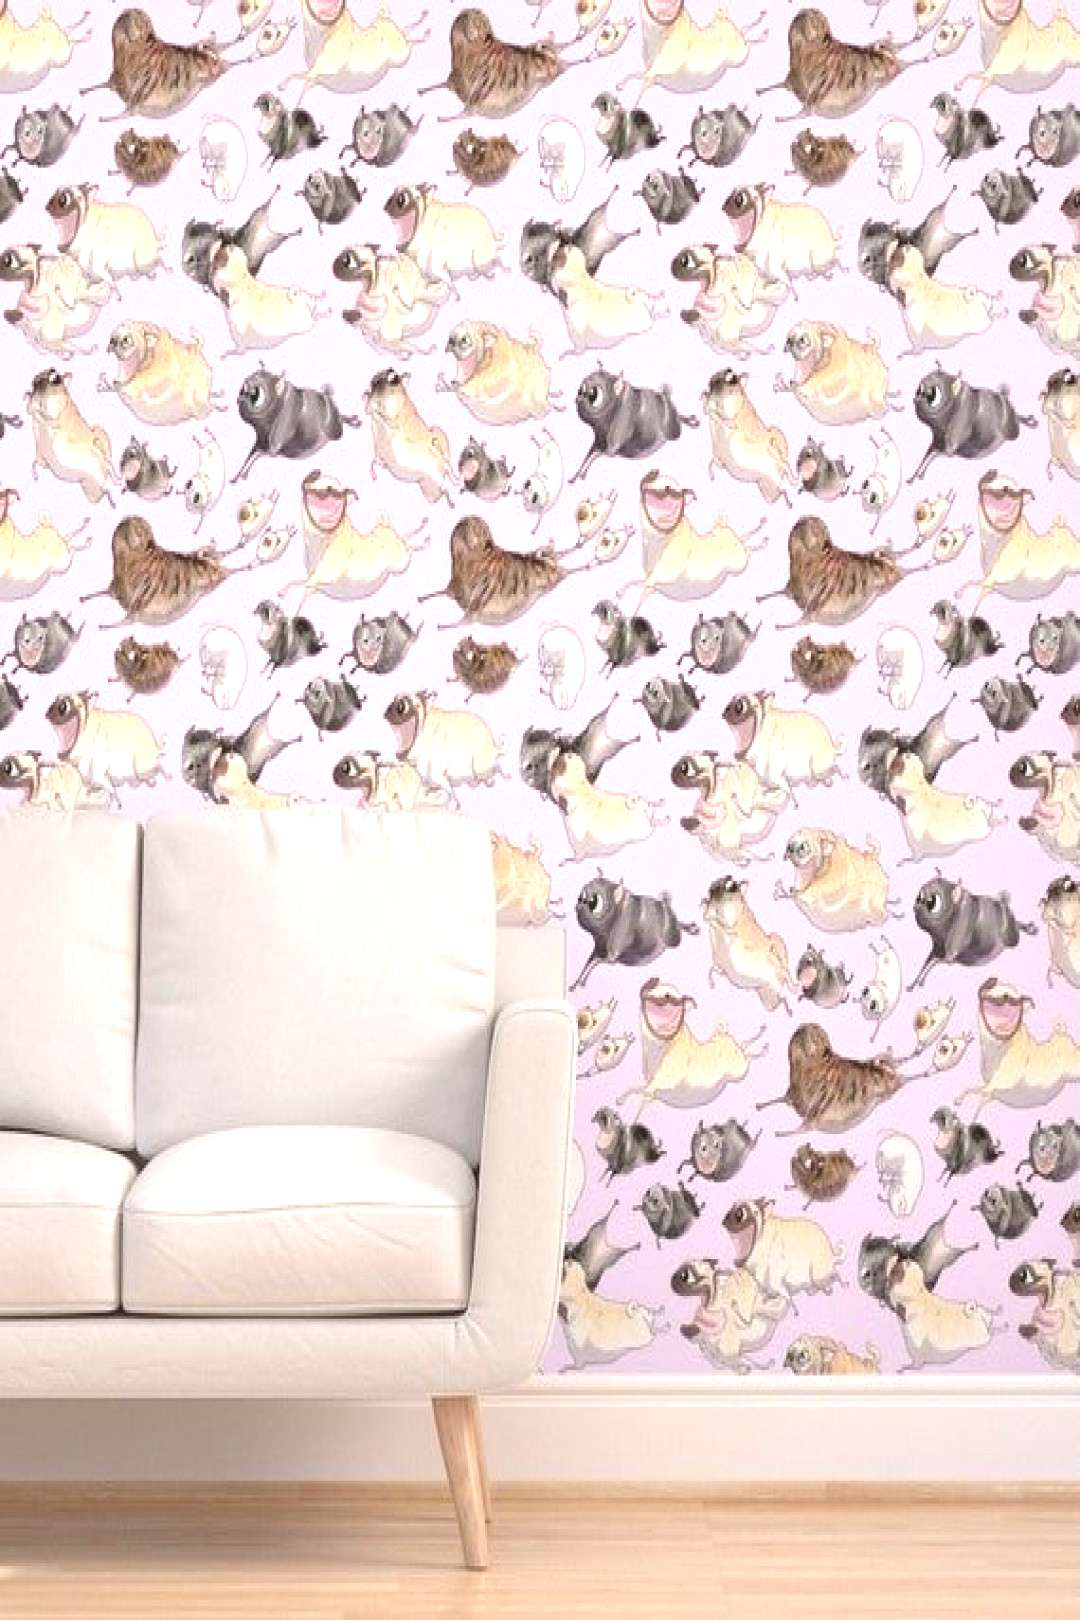 Lavender Pugs Wallpaper - Pugs On The Move by inkpug - Funny Pug Pattern  Toy Breed Group Rescue Pu